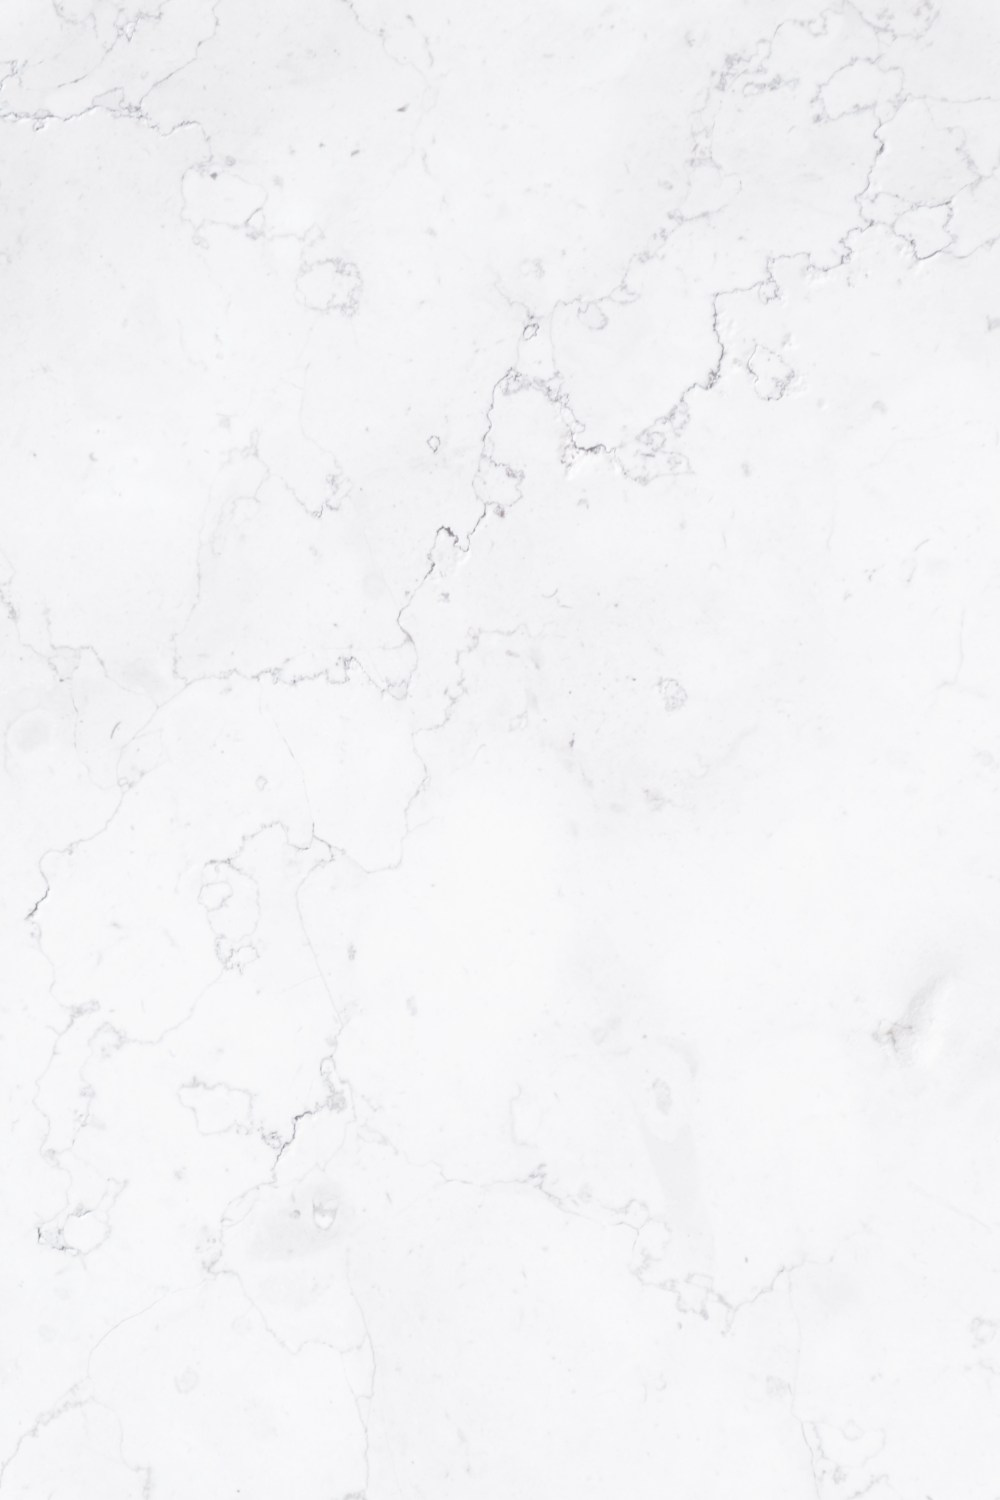 White Marble Seamless : white, marble, seamless, Marble, Texture, Pictures, Download, Images, Unsplash